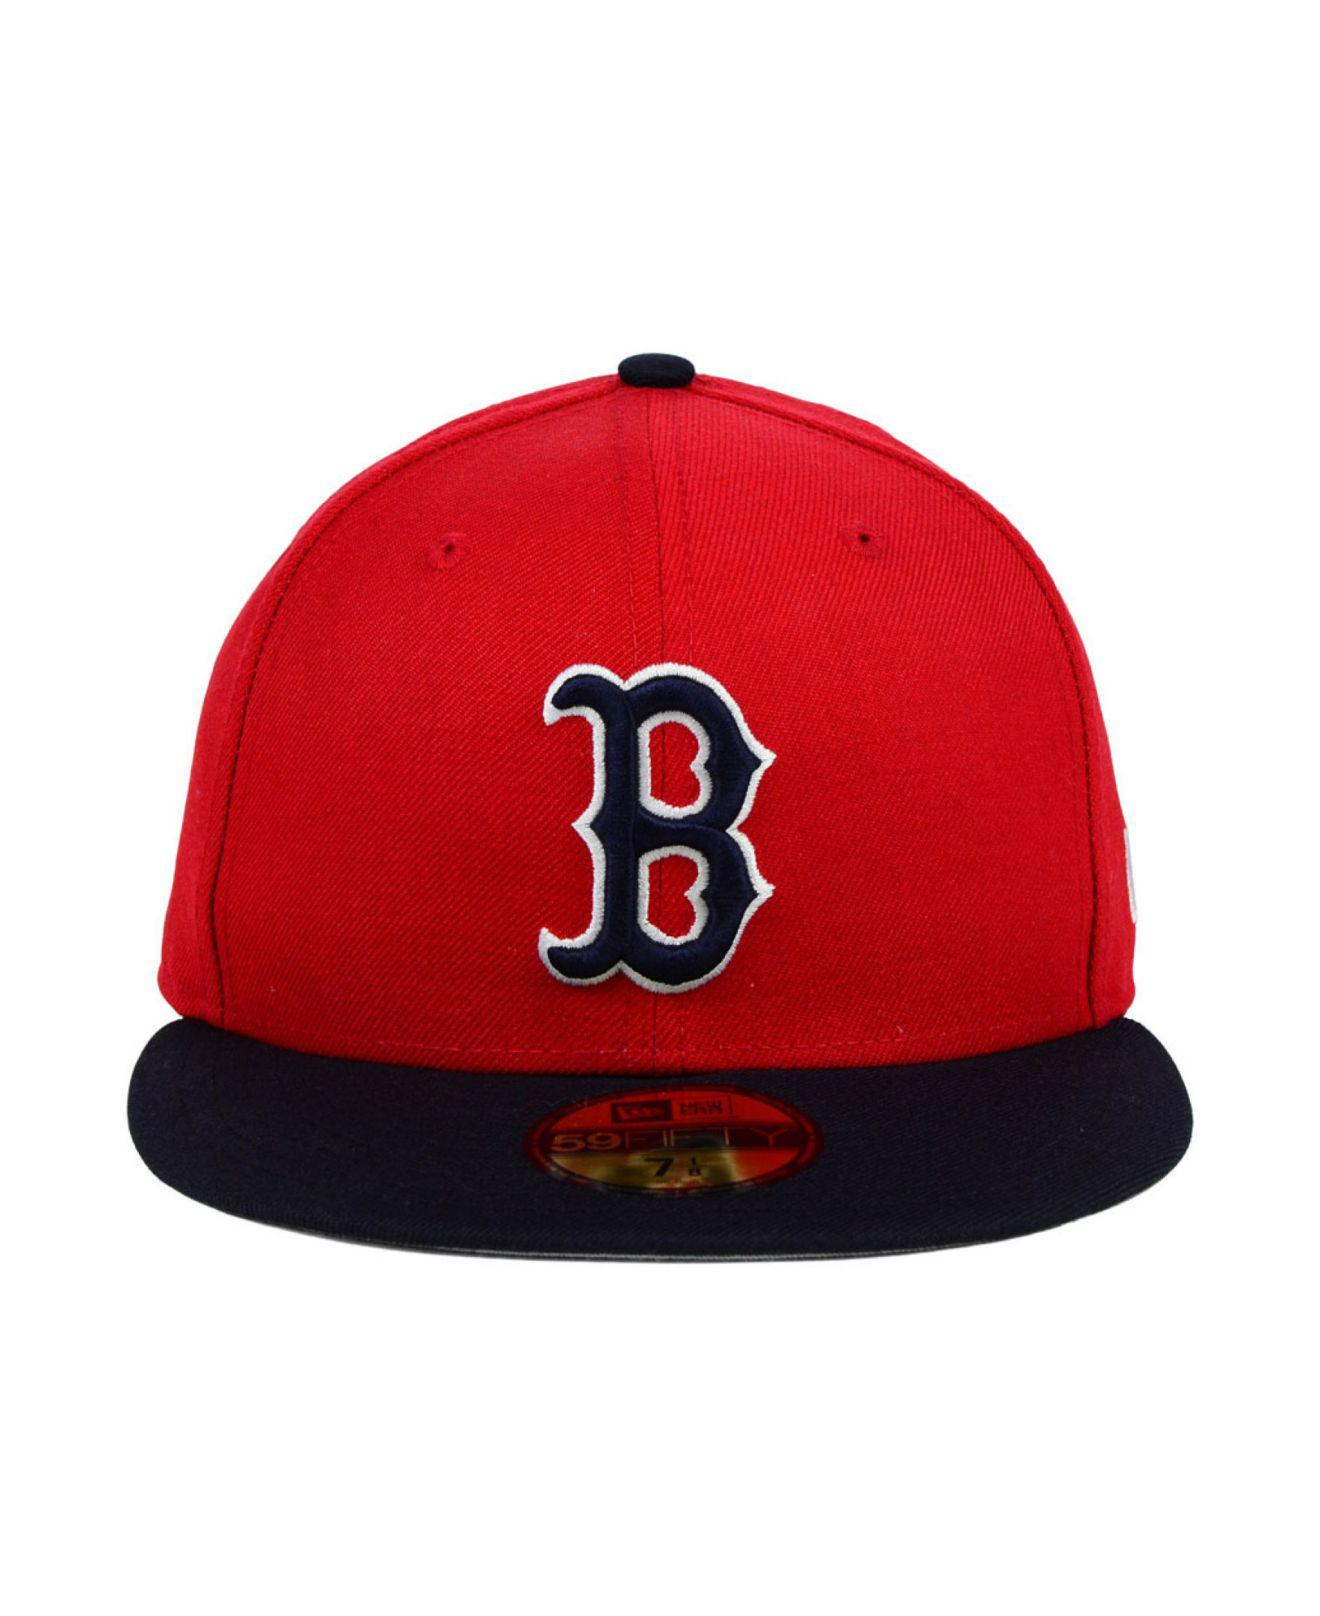 Lyst - KTZ Boston Red Sox Mlb Cooperstown 59fifty Cap in Red for Men 245eb1bde367